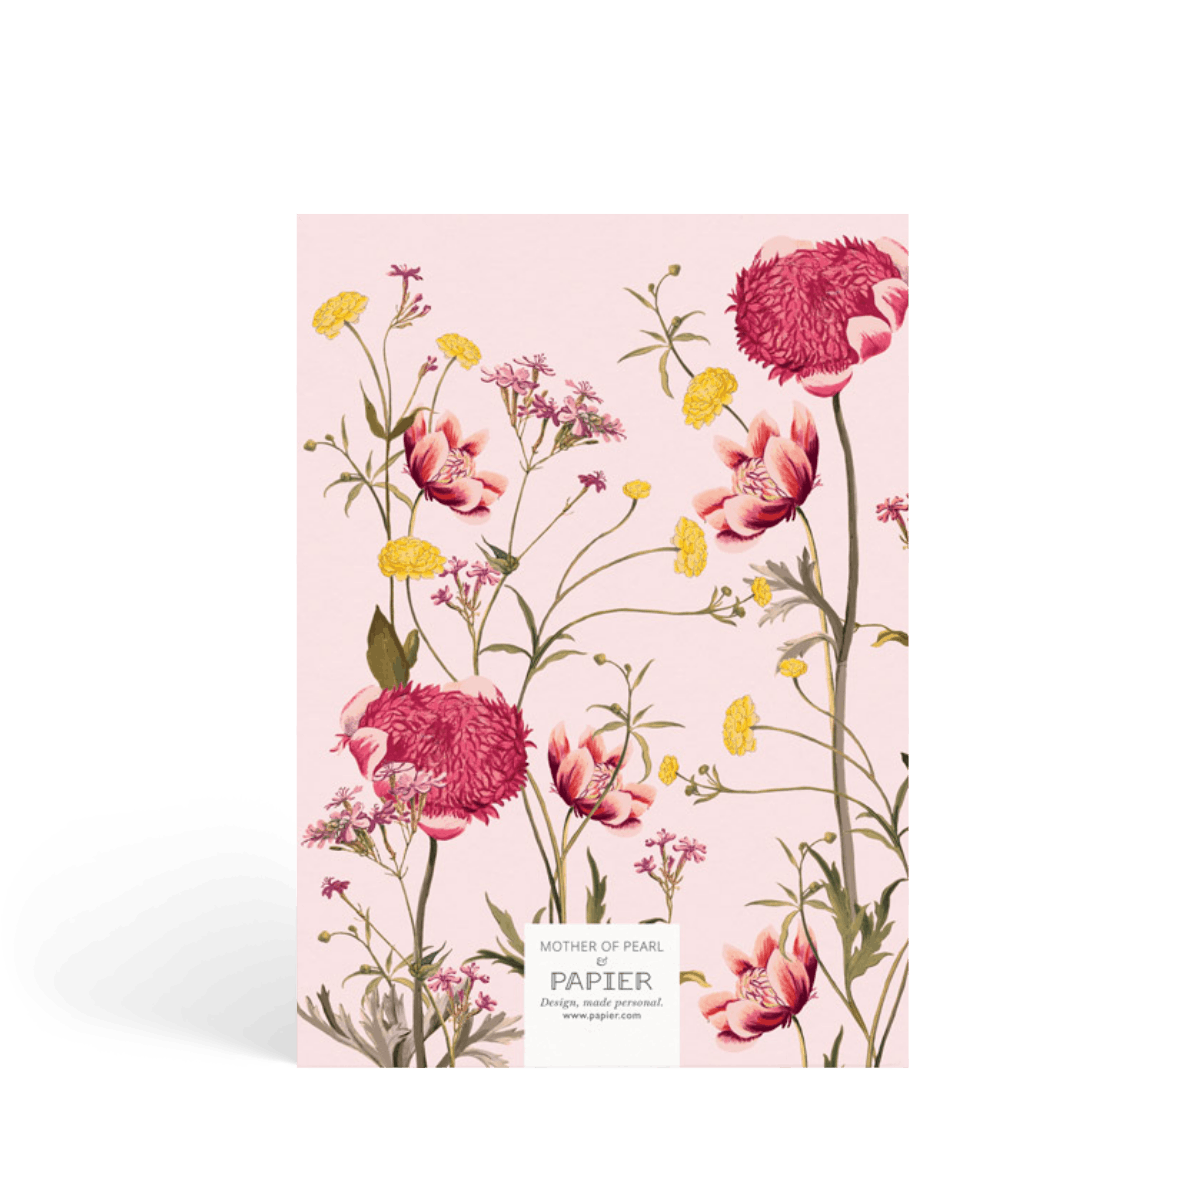 Https%3a%2f%2fwww.papier.com%2fproduct image%2f94731%2f5%2fnavy botanical 23702 back 1572019074.png?ixlib=rb 1.1